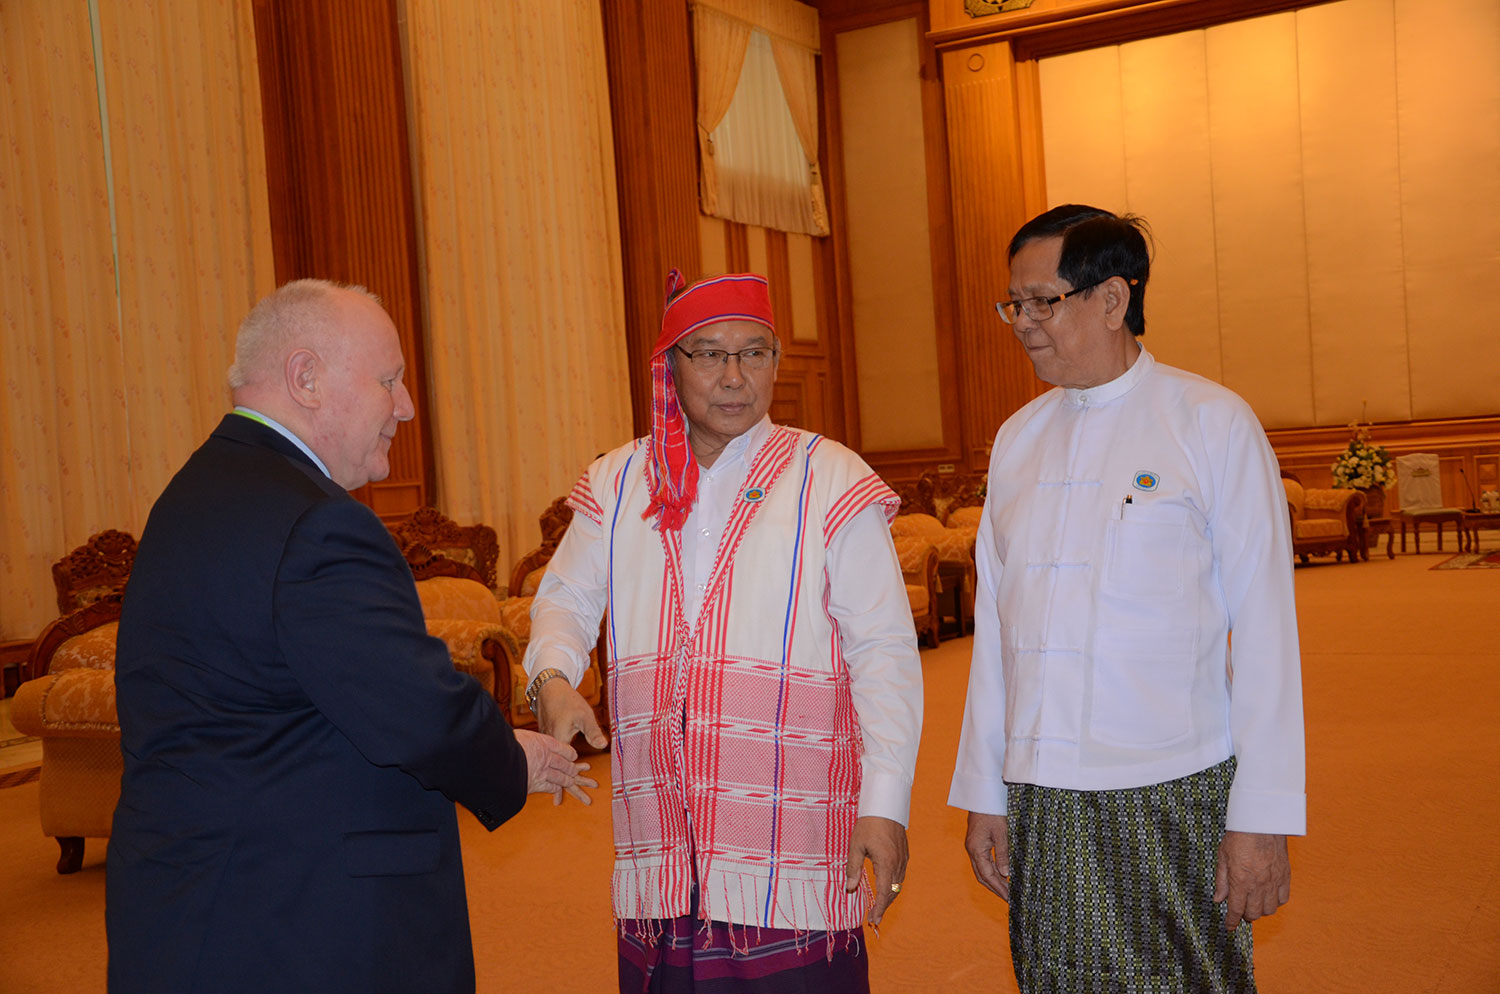 (L-R)Georg Milbradt, Chairman of Board, and Mahn Win Khaing Than, the Speaker of the House of Nationalities, to discuss Federalism